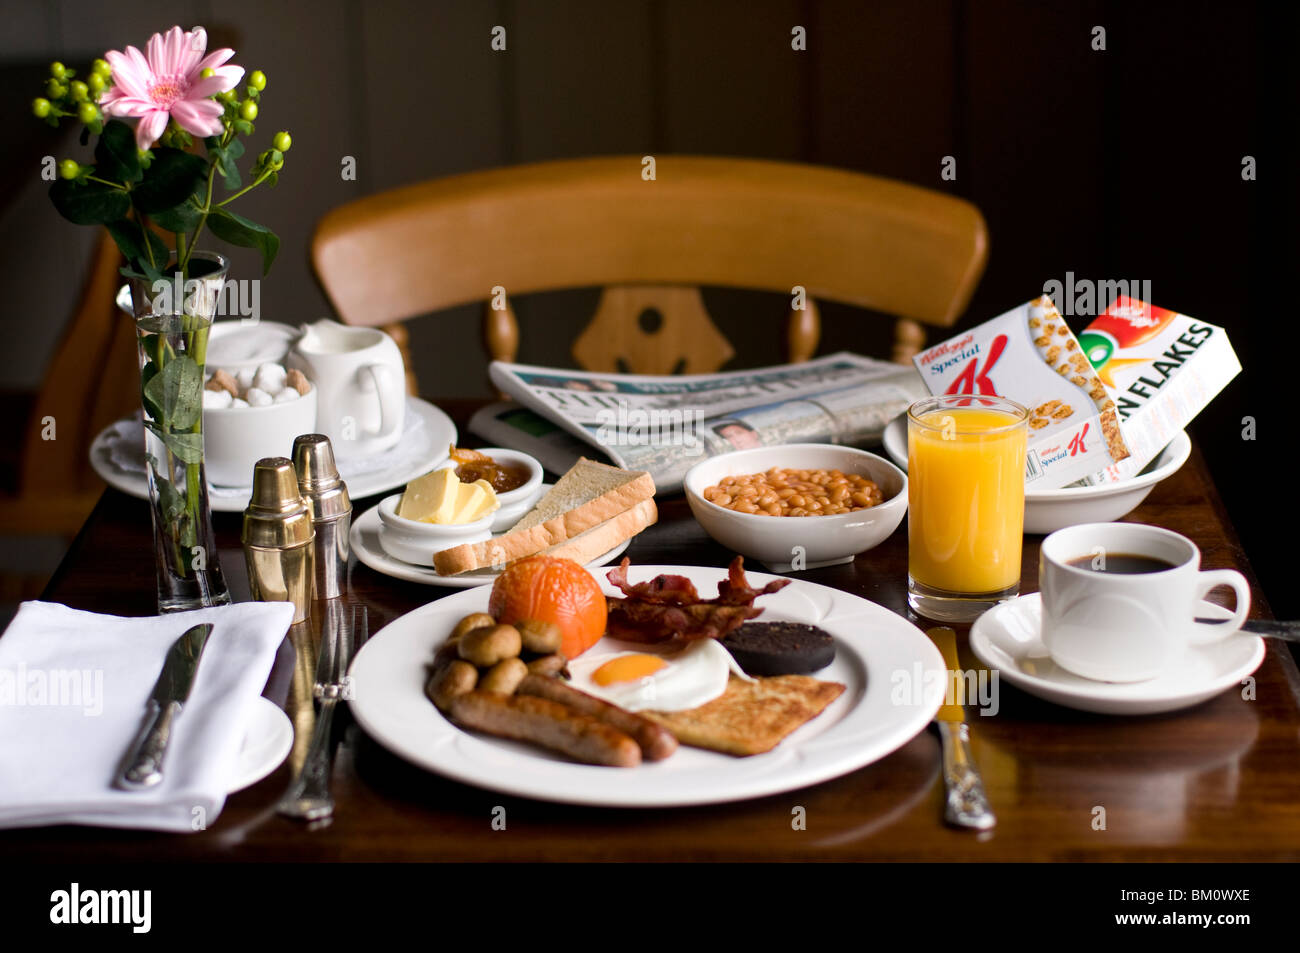 classic english breakfast table with orange juice and coffee and newspaper & classic english breakfast table with orange juice and coffee and ...